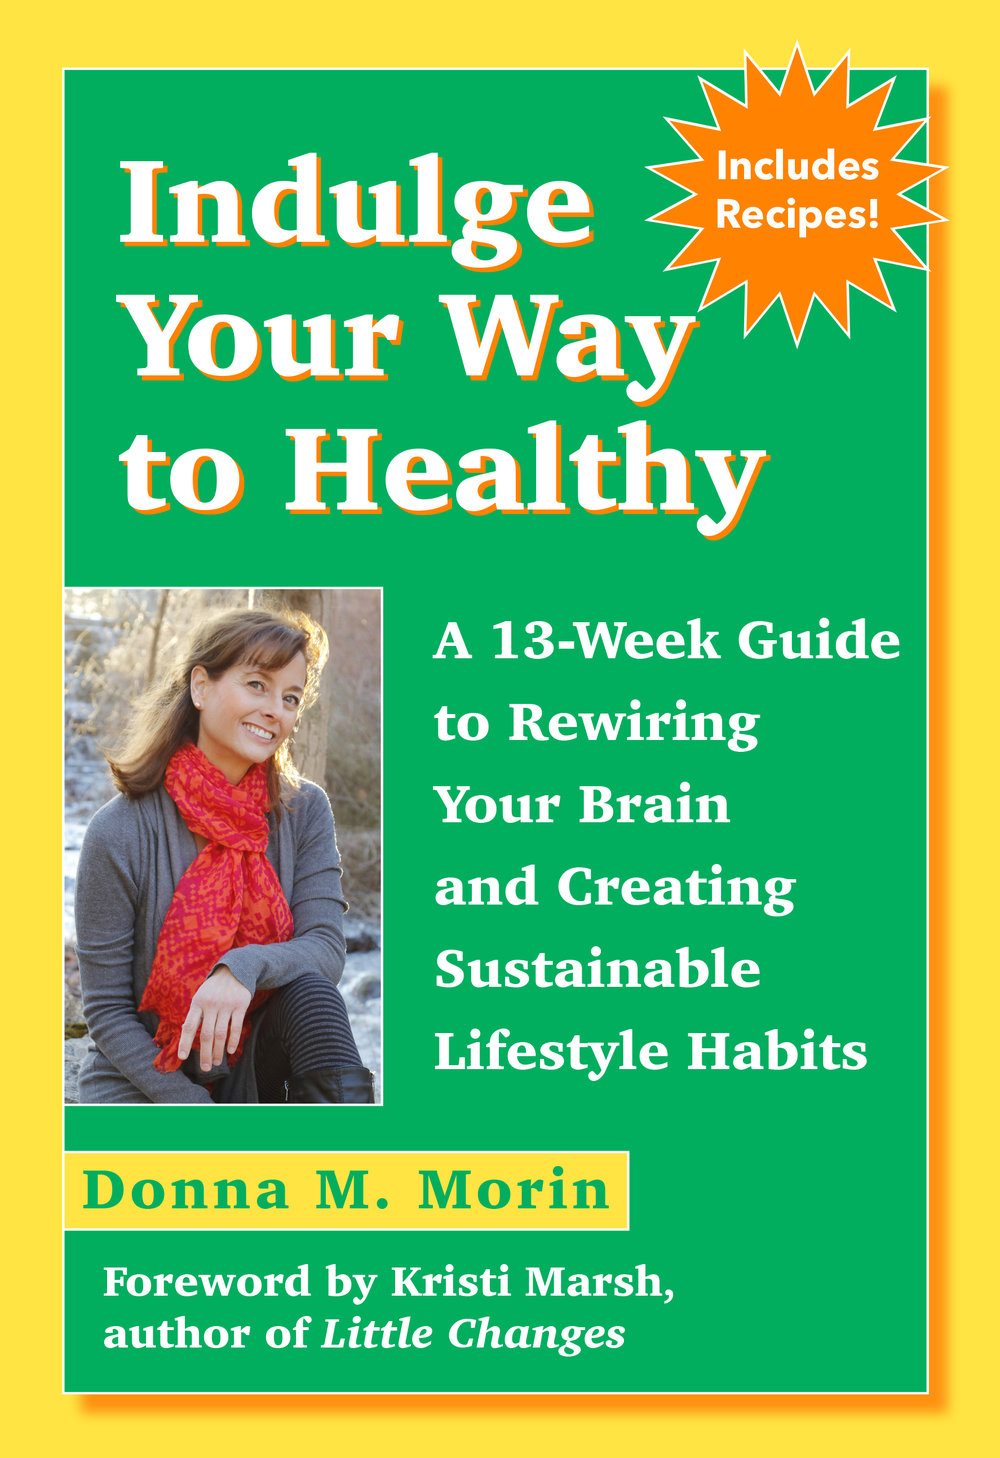 donna morin health coach book indulge your way to healthy